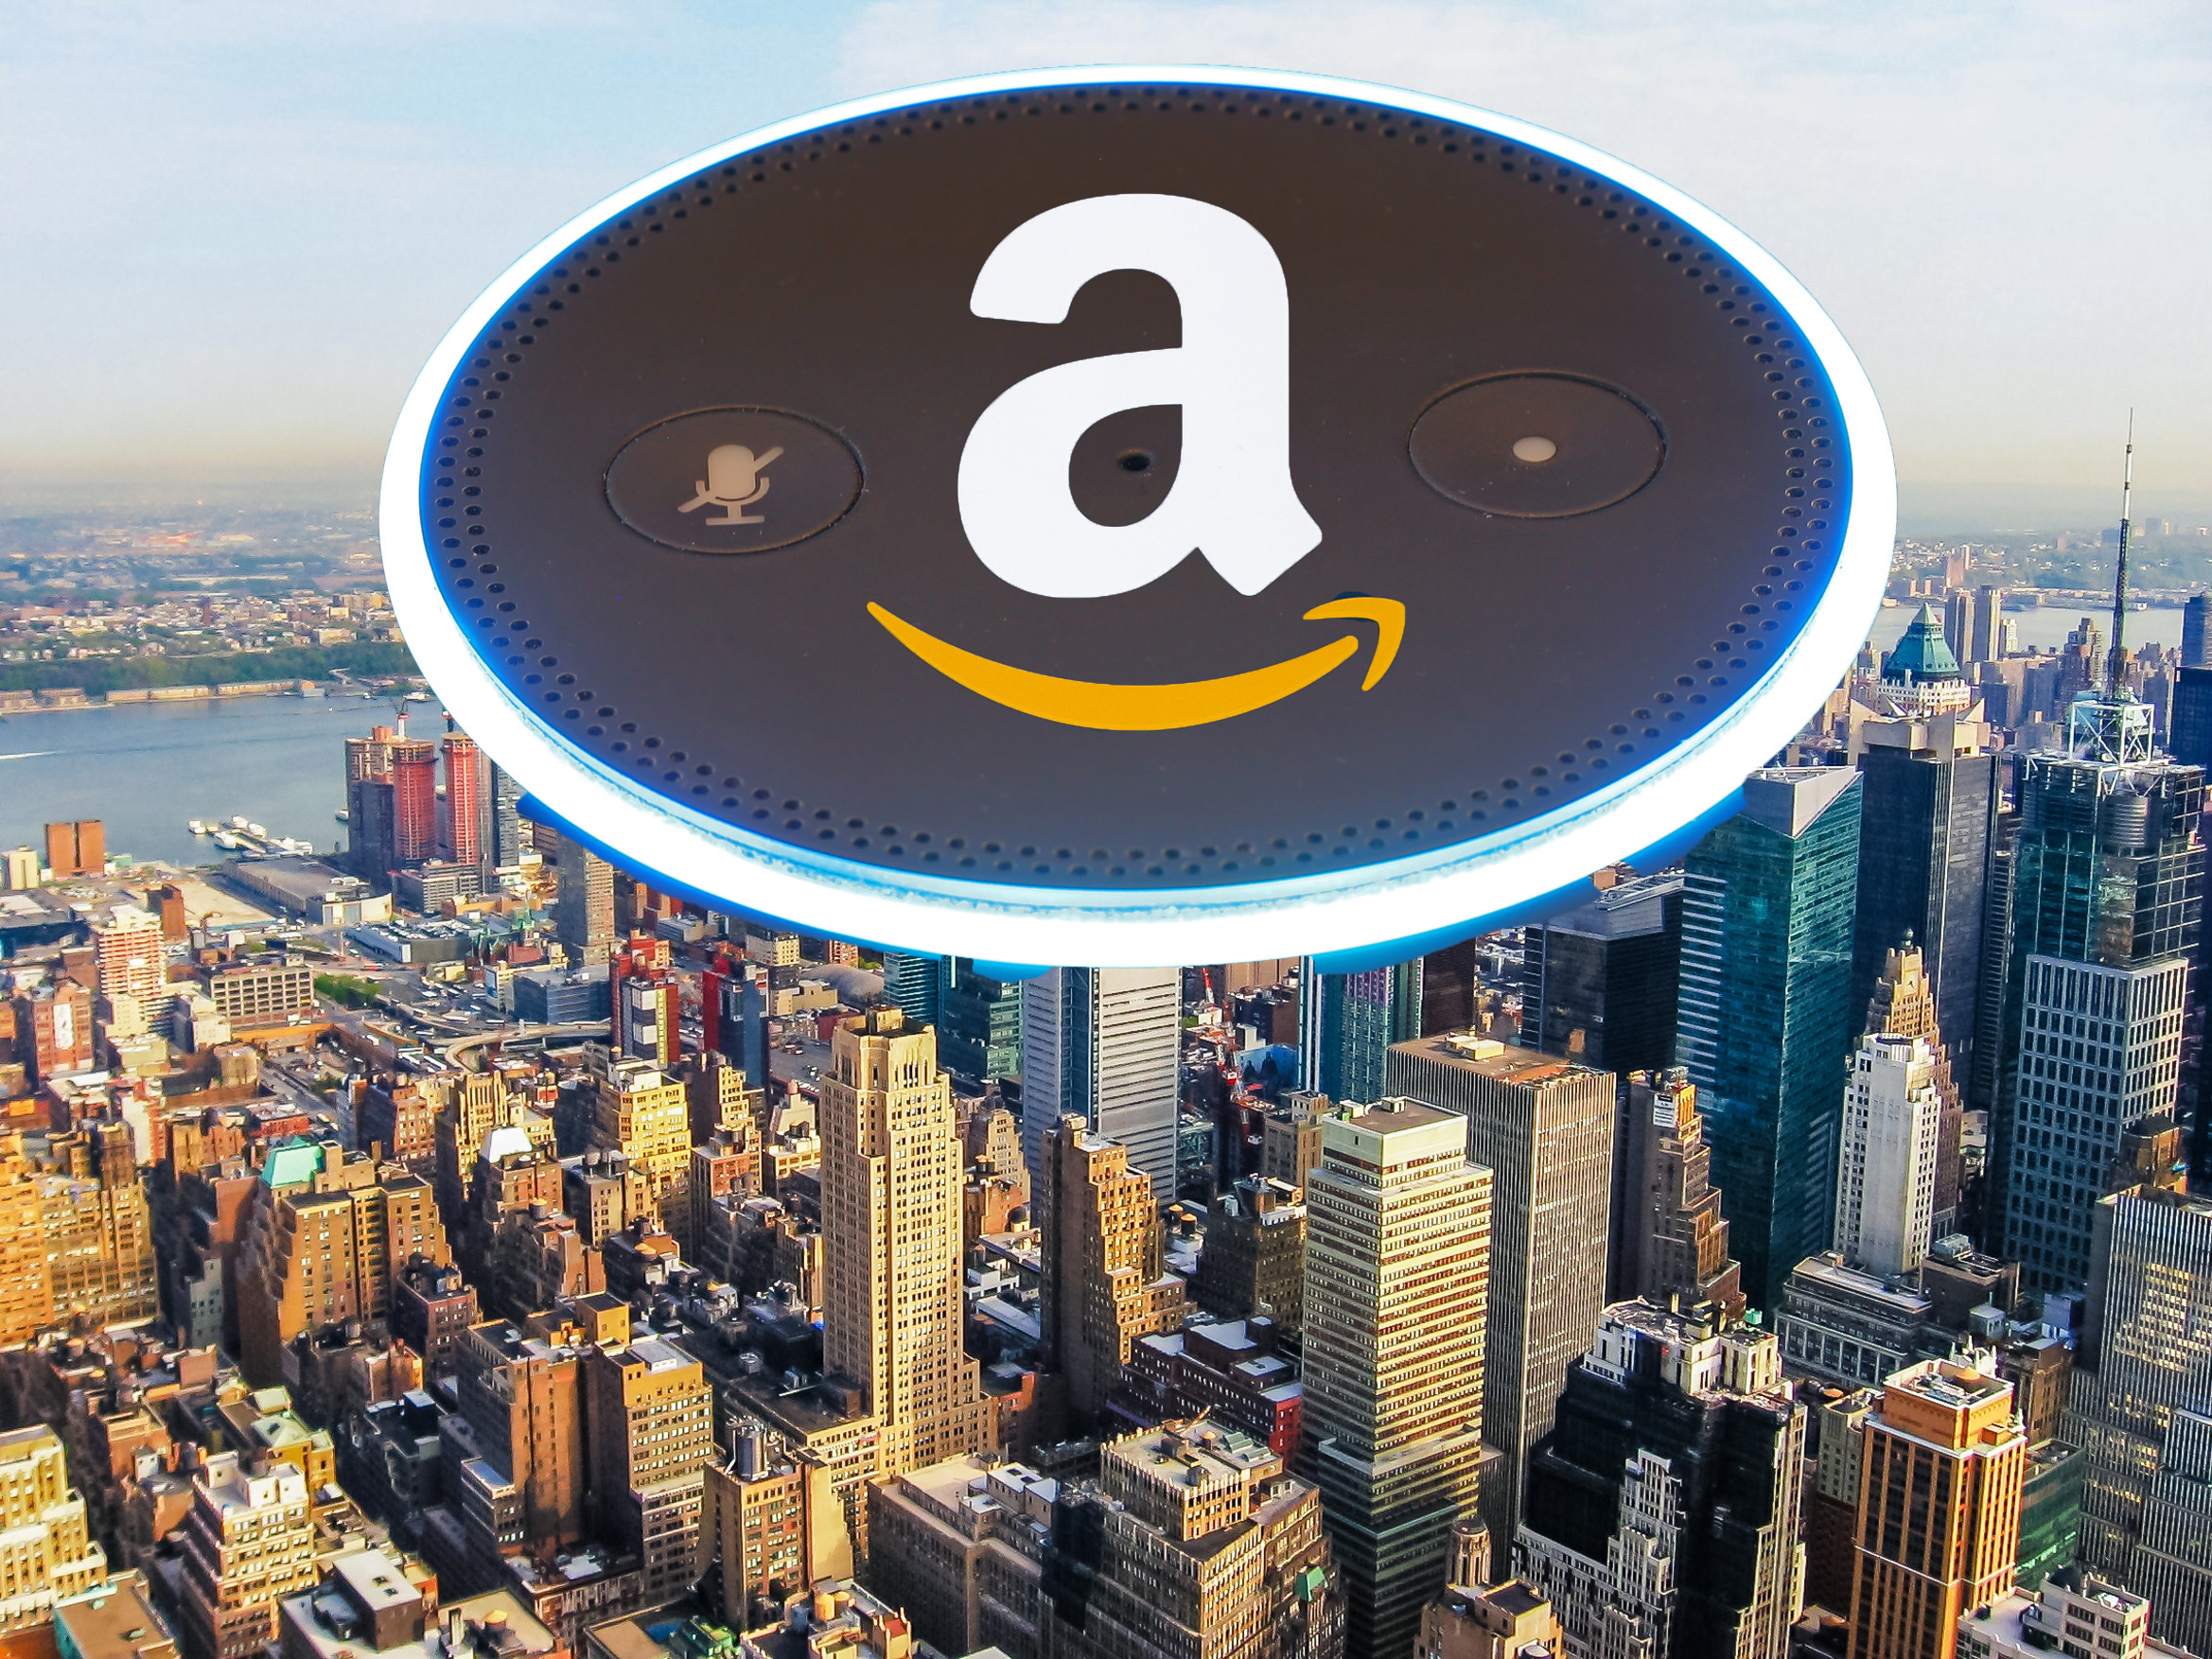 motherboard.vice.com - Amazon's Is Trying to Control the Underlying Infrastructure of Our Economy